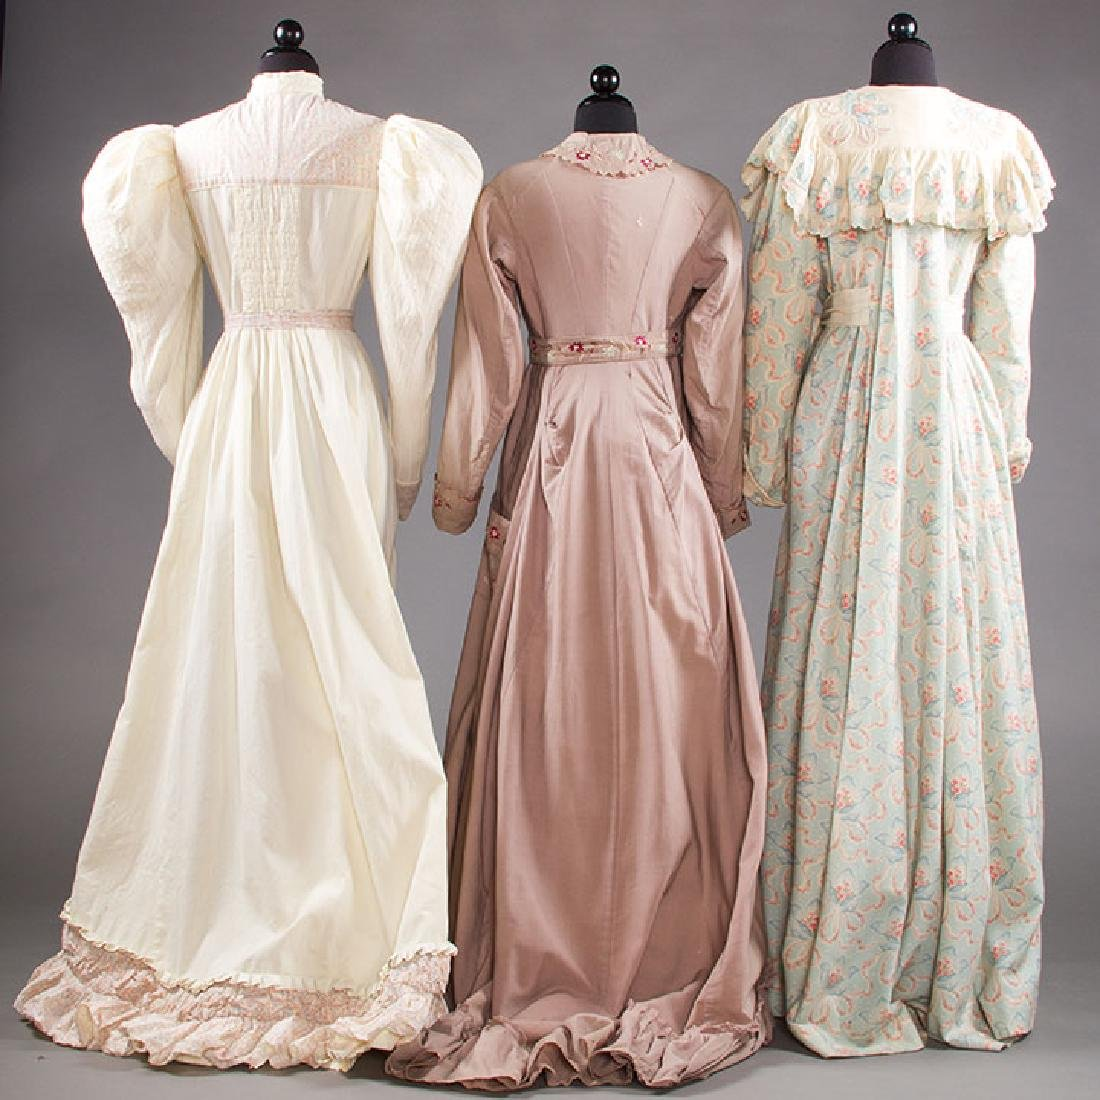 3 LADIES' AT-HOME WRAPPERS, 19TH C - 3